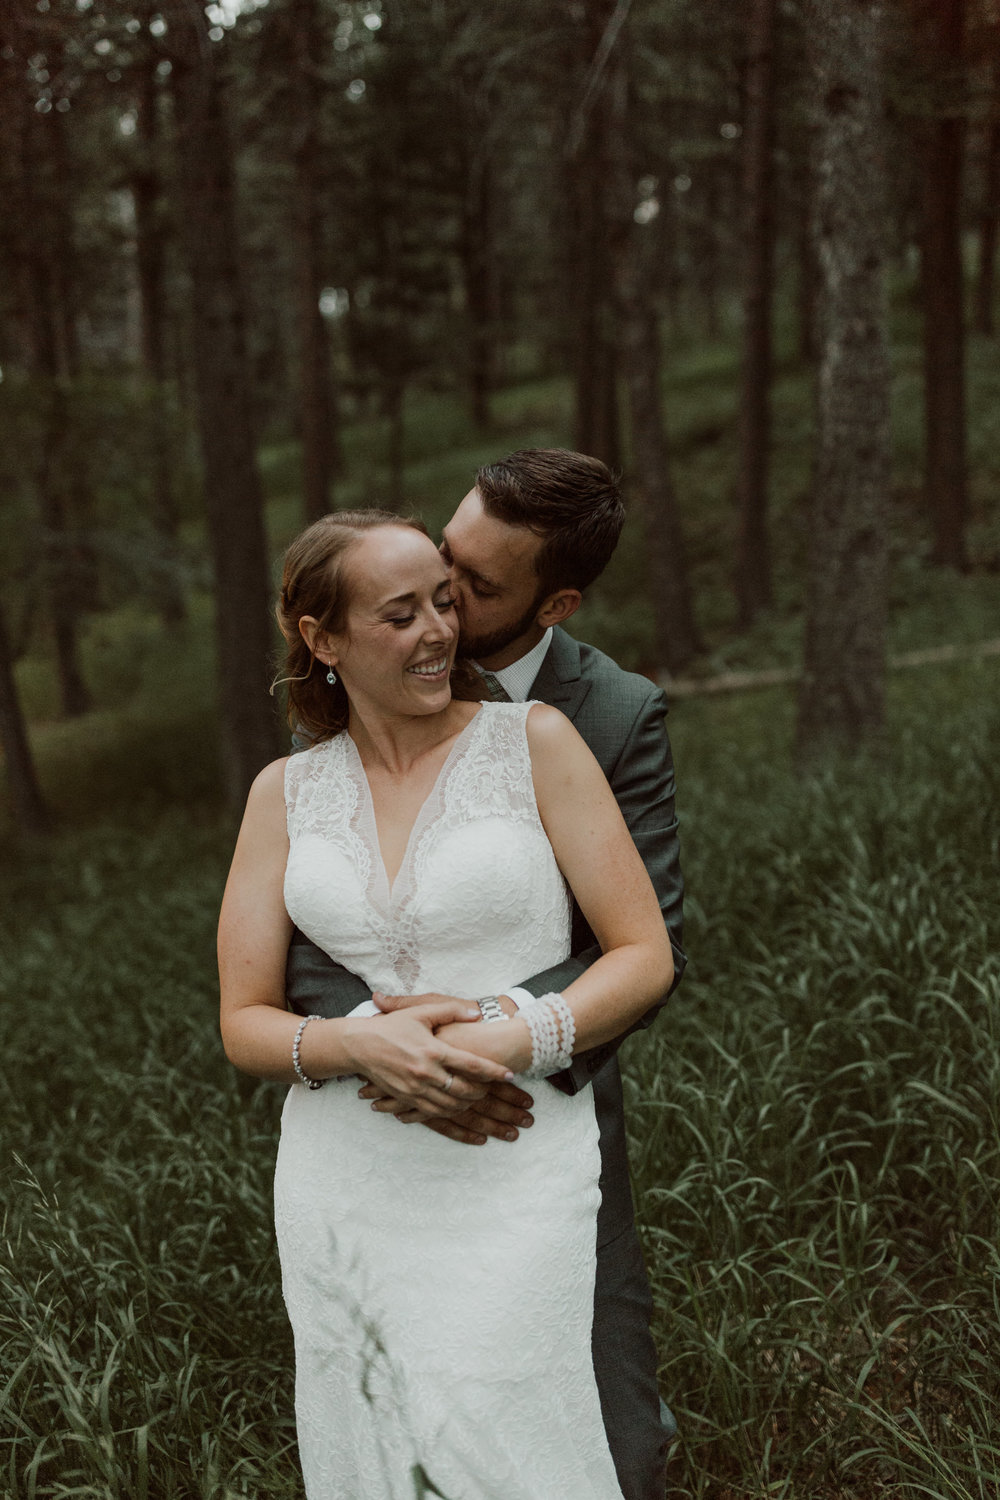 cedarandpines_intimate-colorado-forest-wedding-25.jpg